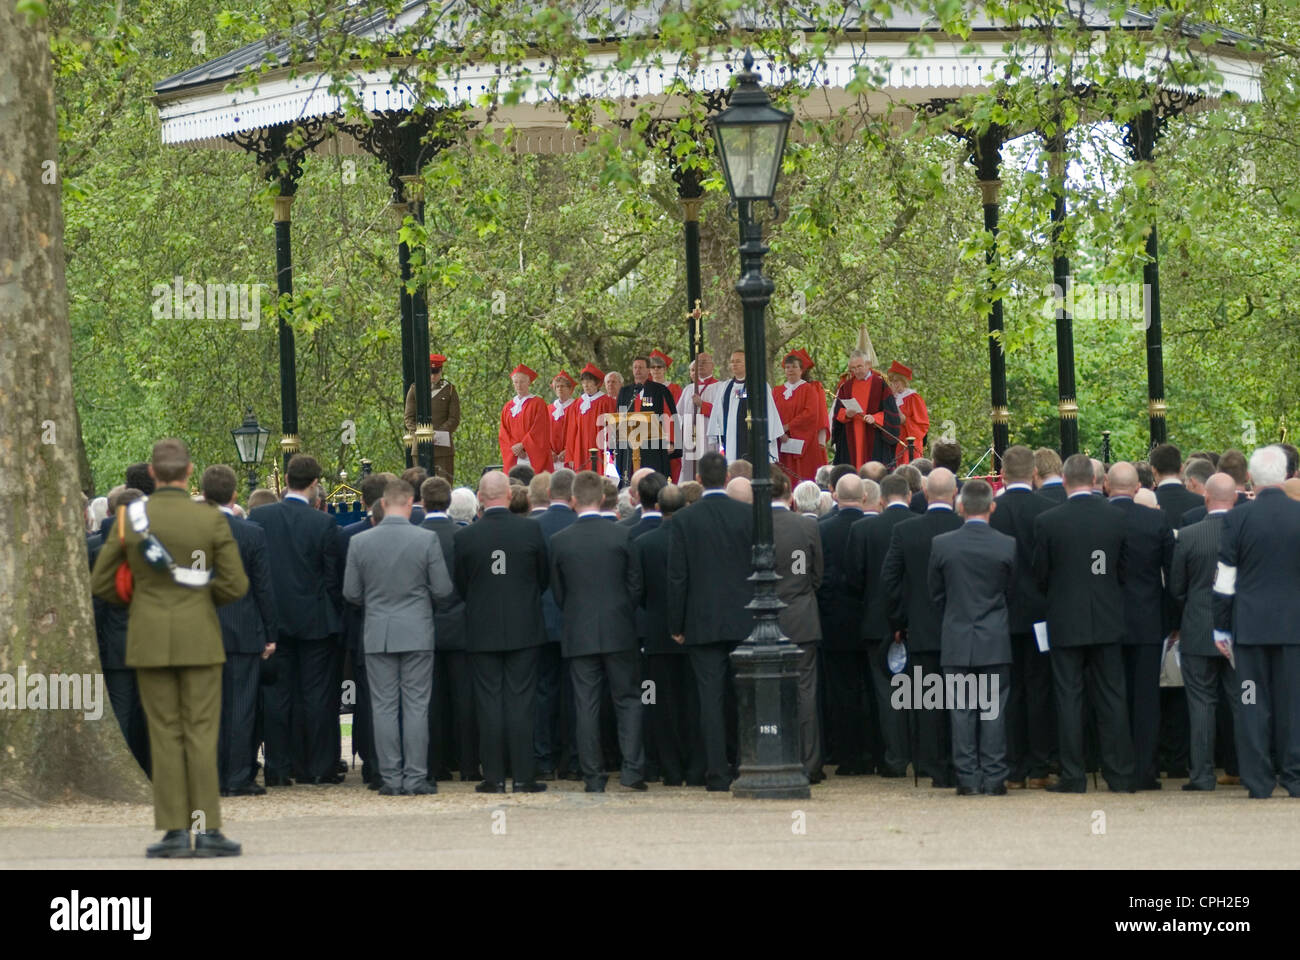 Combined Cavalry Old Comrades Association and parade Hyde Park London UK. The service at the Hyde Park Band Stand. - Stock Image